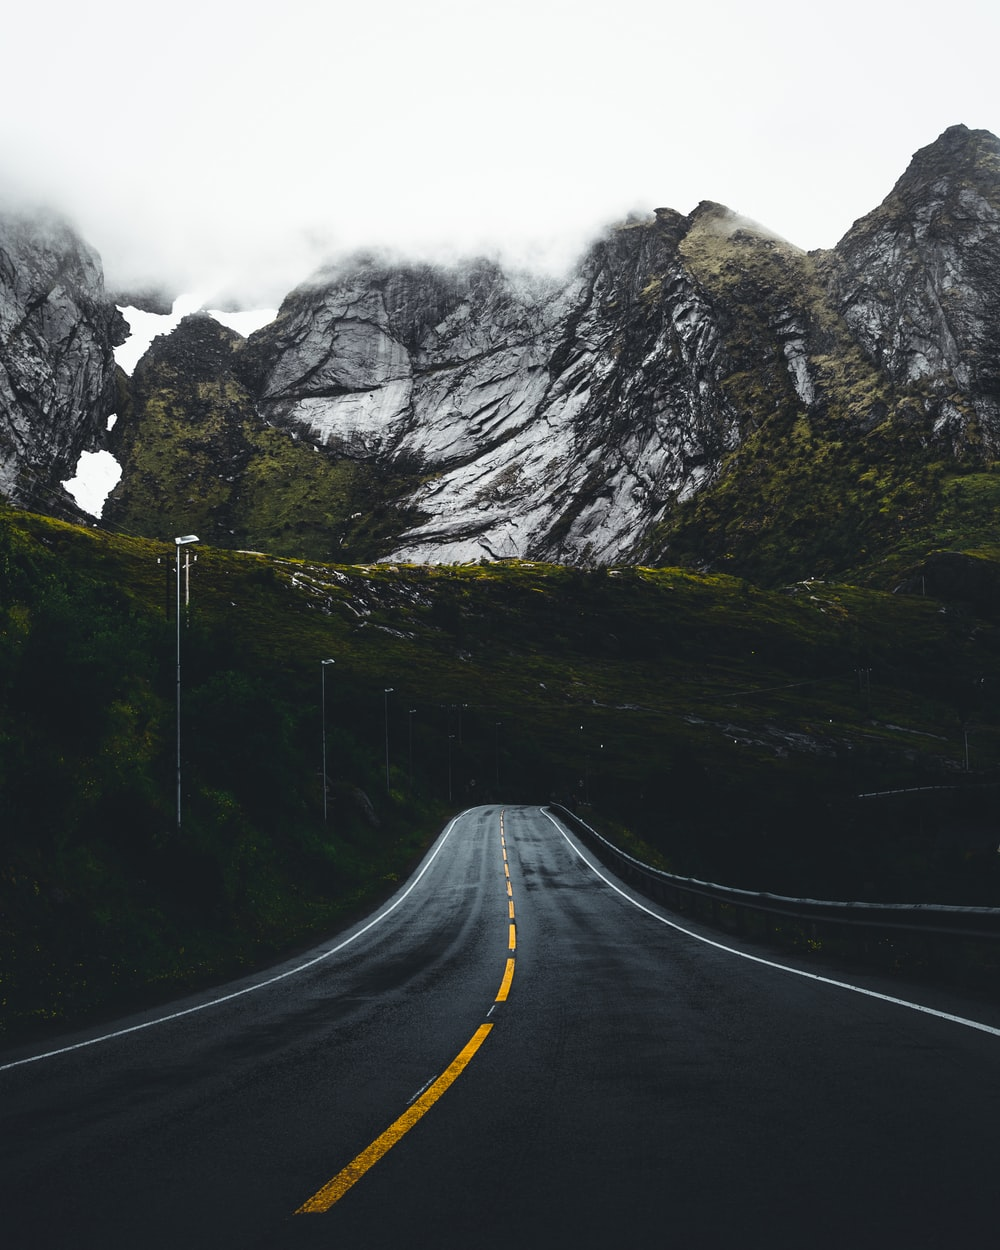 asphalt road leading to mountains